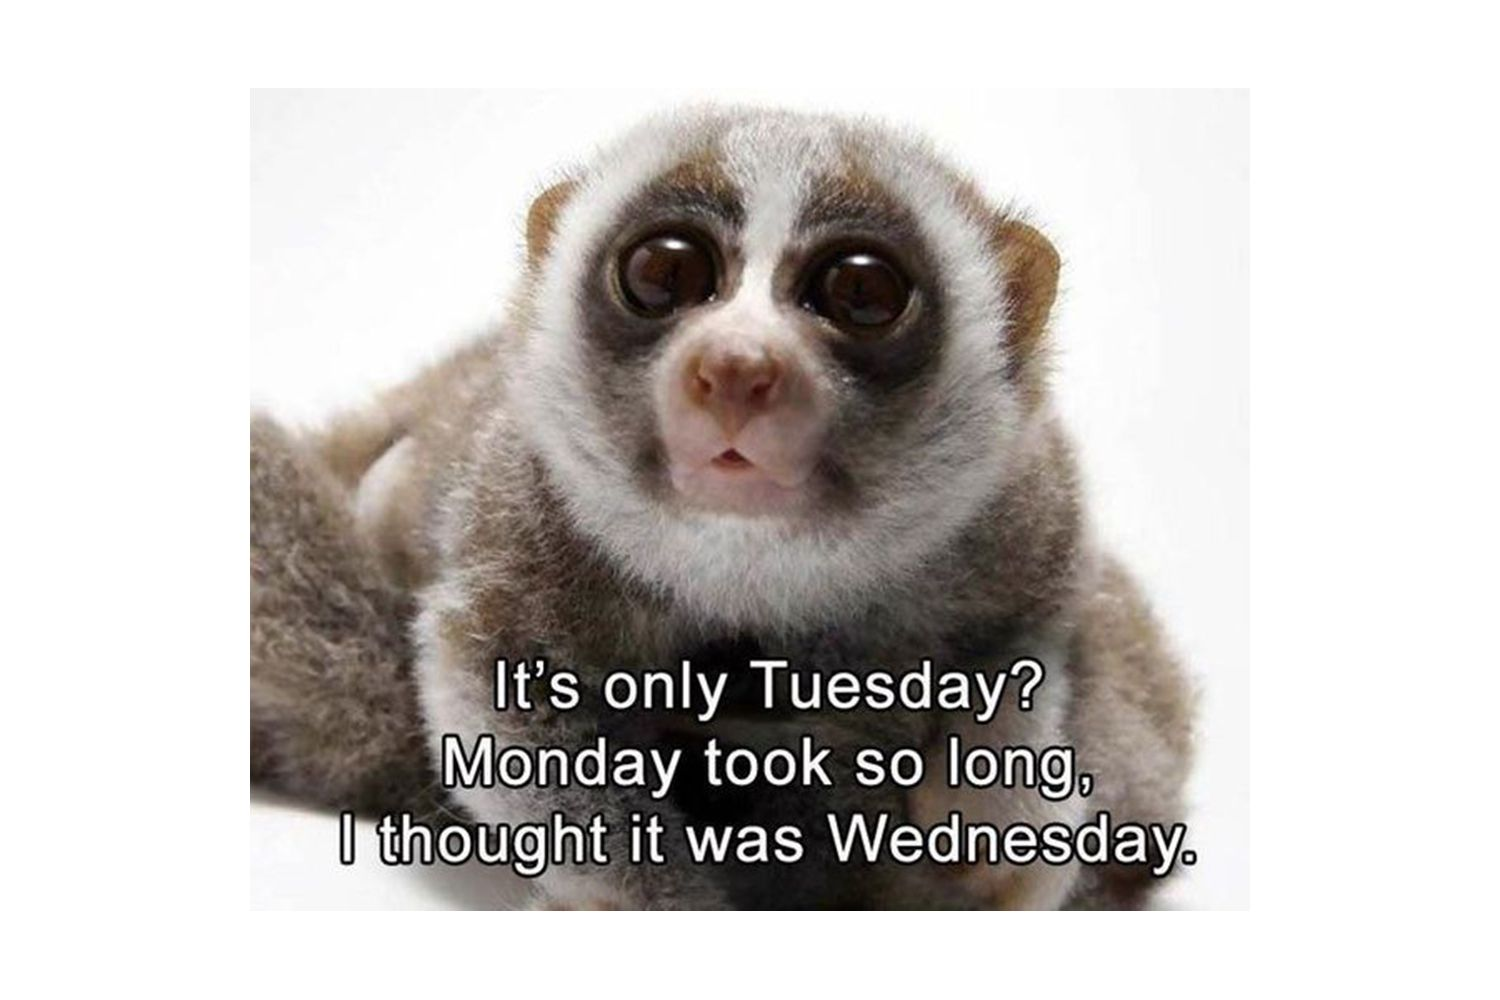 Monday took to long